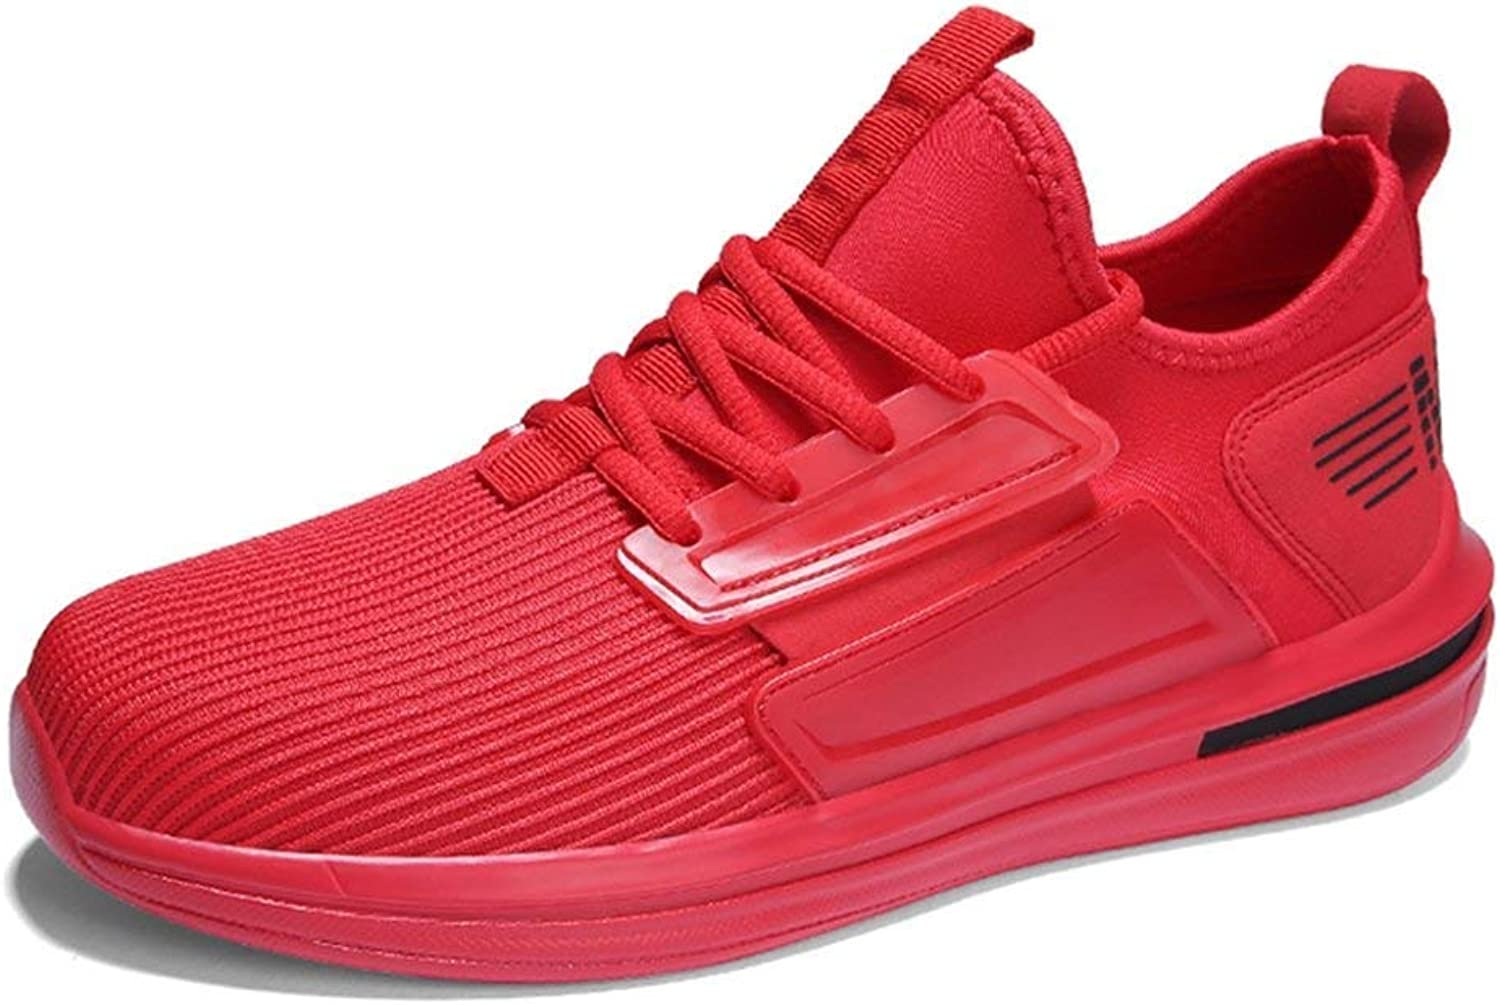 ZHRUI Men Summer Mesh Casual shoes Lace up Sneakers for Male Walking shoes Outdoor Flats Sneakers shoes Men (color   Red B, Size   11.5=47 EU)